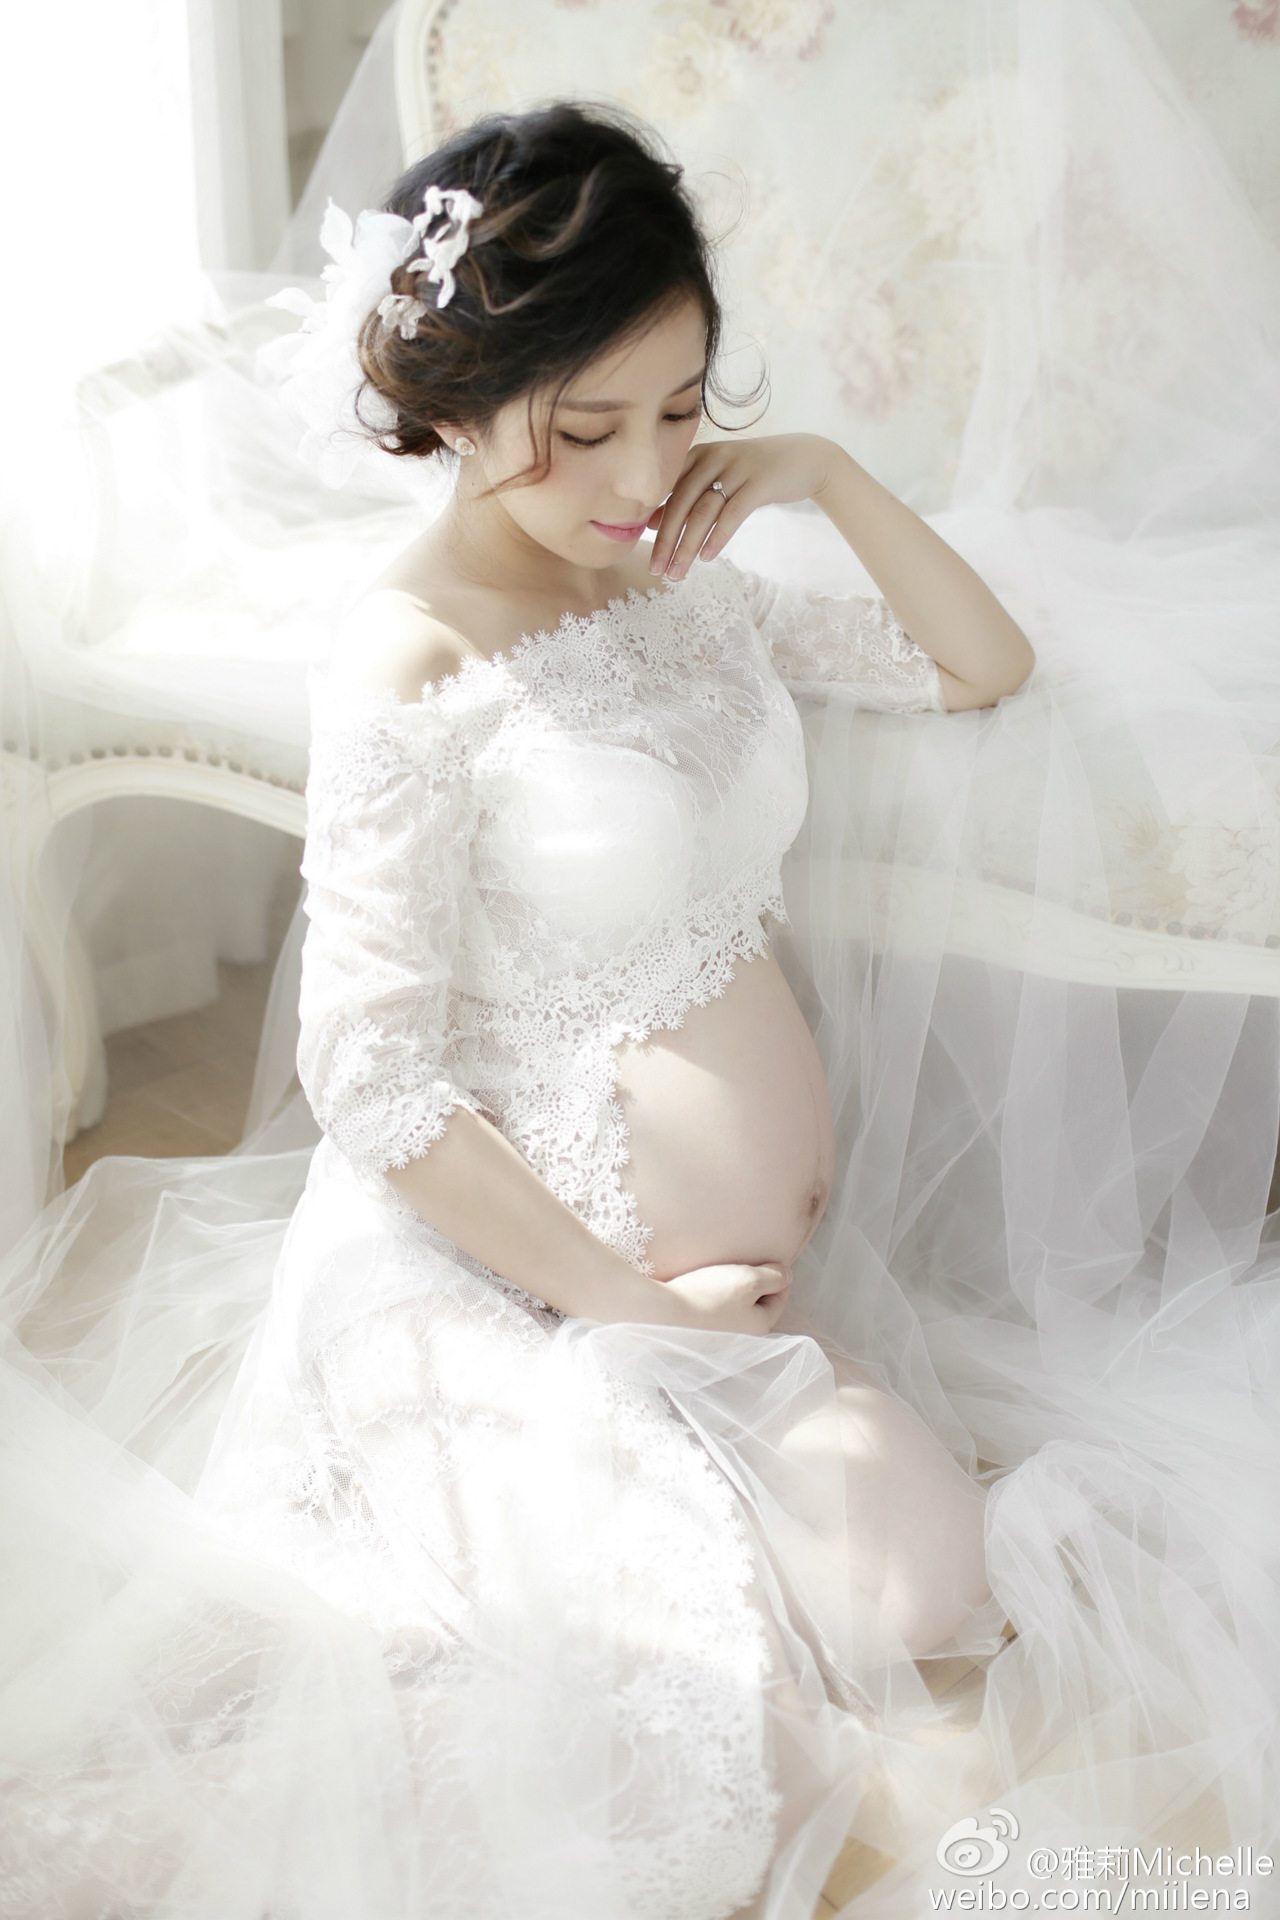 Pregnancy Elegant Fancy Gown White Lace Maternity Photography Props Royal Style Dresses Pregnant Women Photo Shoot Dress Clothes rq elegant maternity dress photography props long dress pregnant women clothes fancy pregnancy photo props shoot q83